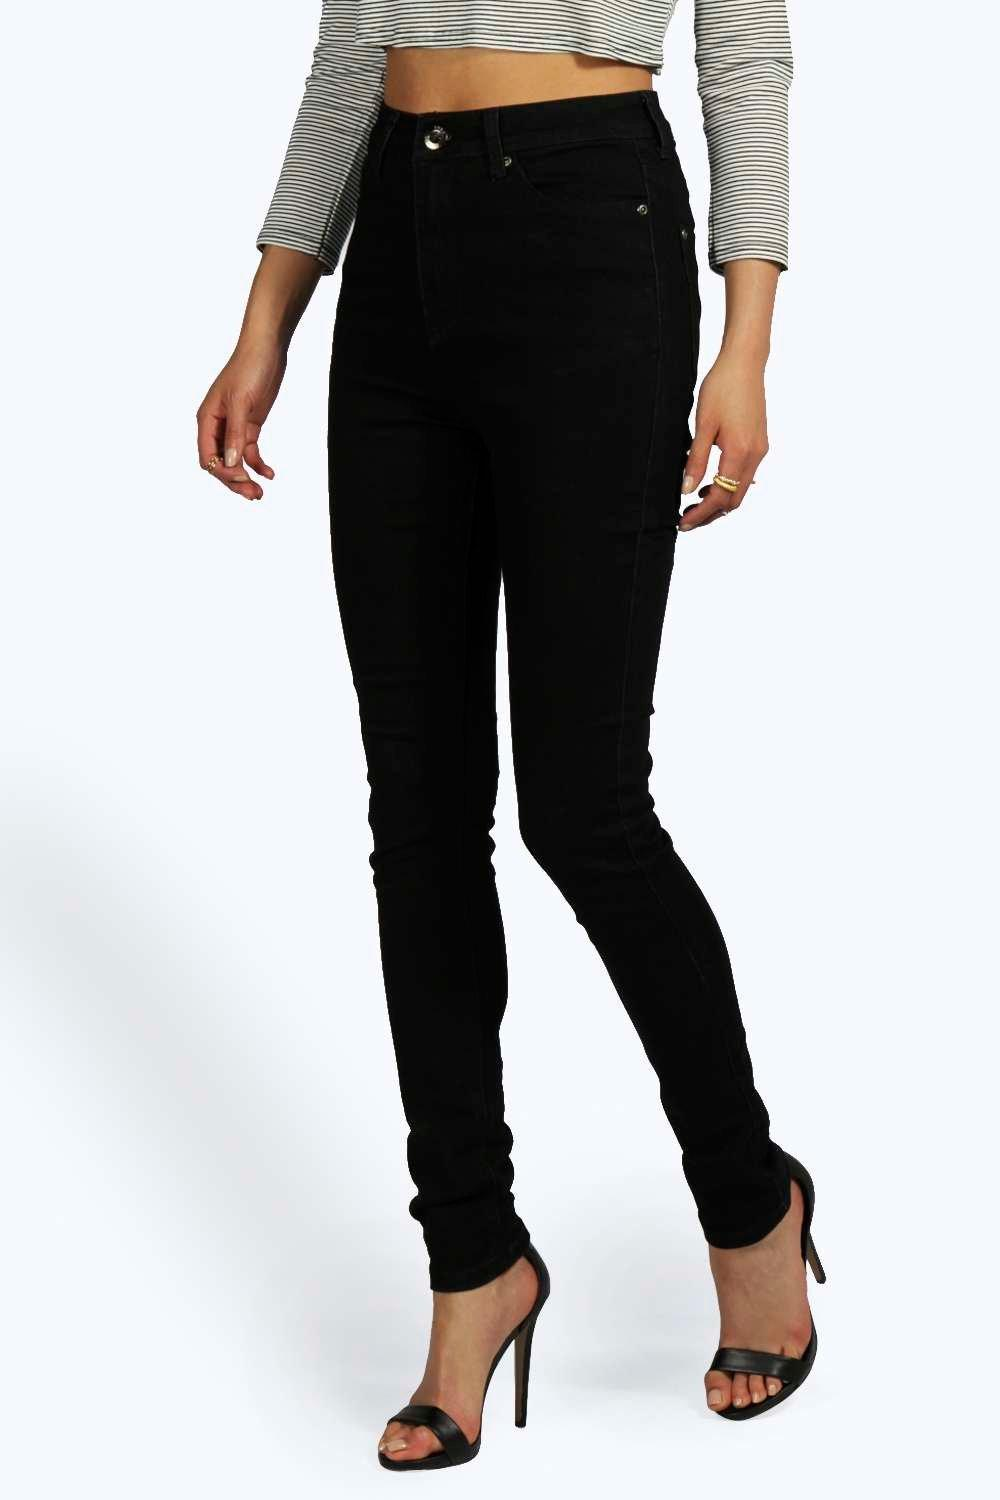 Boohoo high waist disco jeans